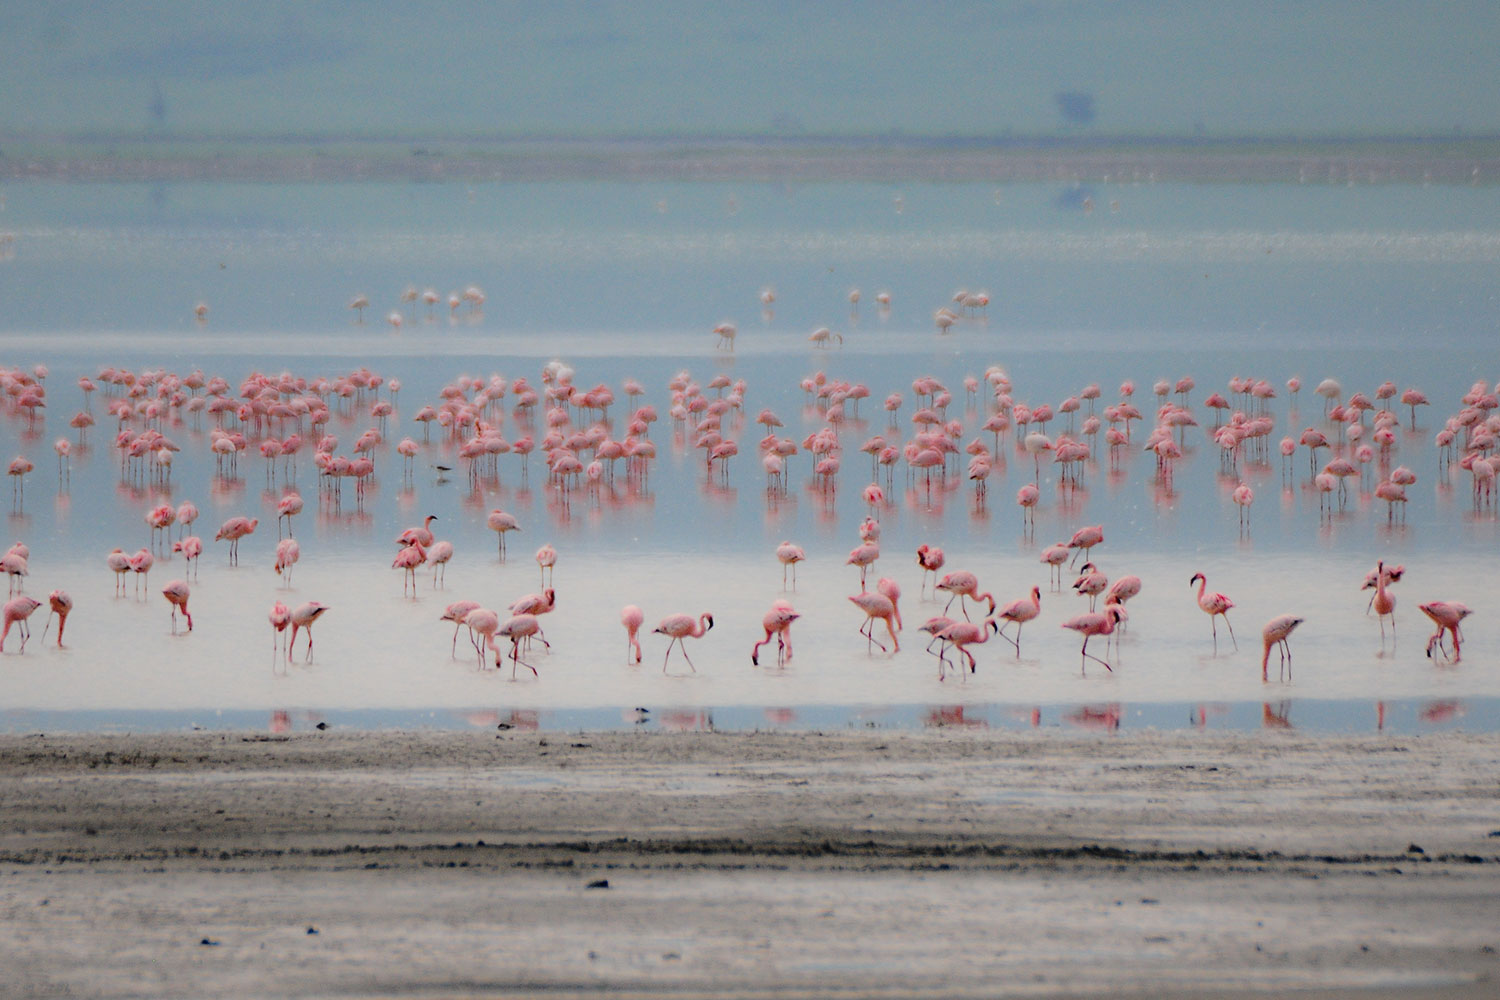 Tanzania is truly a bird watcher's paradise; over 1000 bird species have been recorded from water birds, forest birds, savannah birds to seabirds.